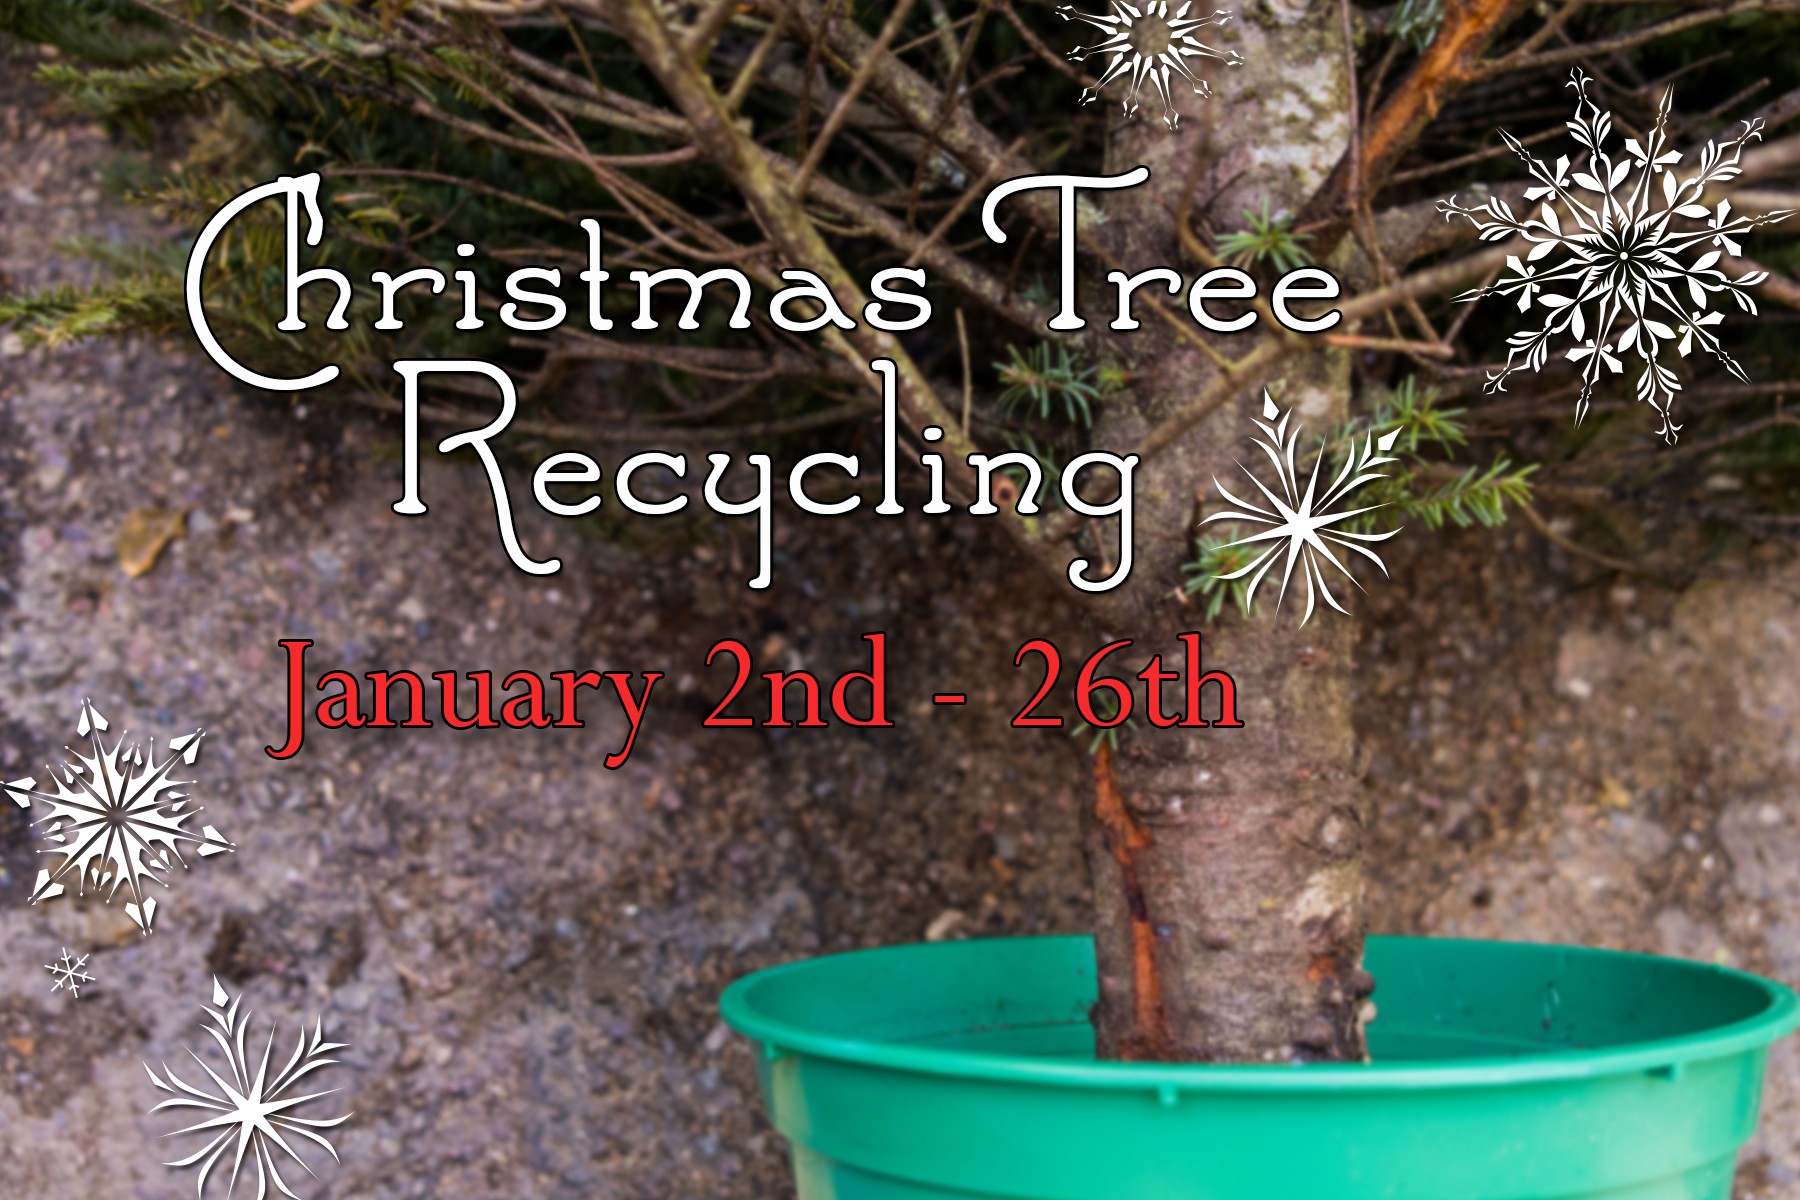 Christmas-Tree-Recycling-2017